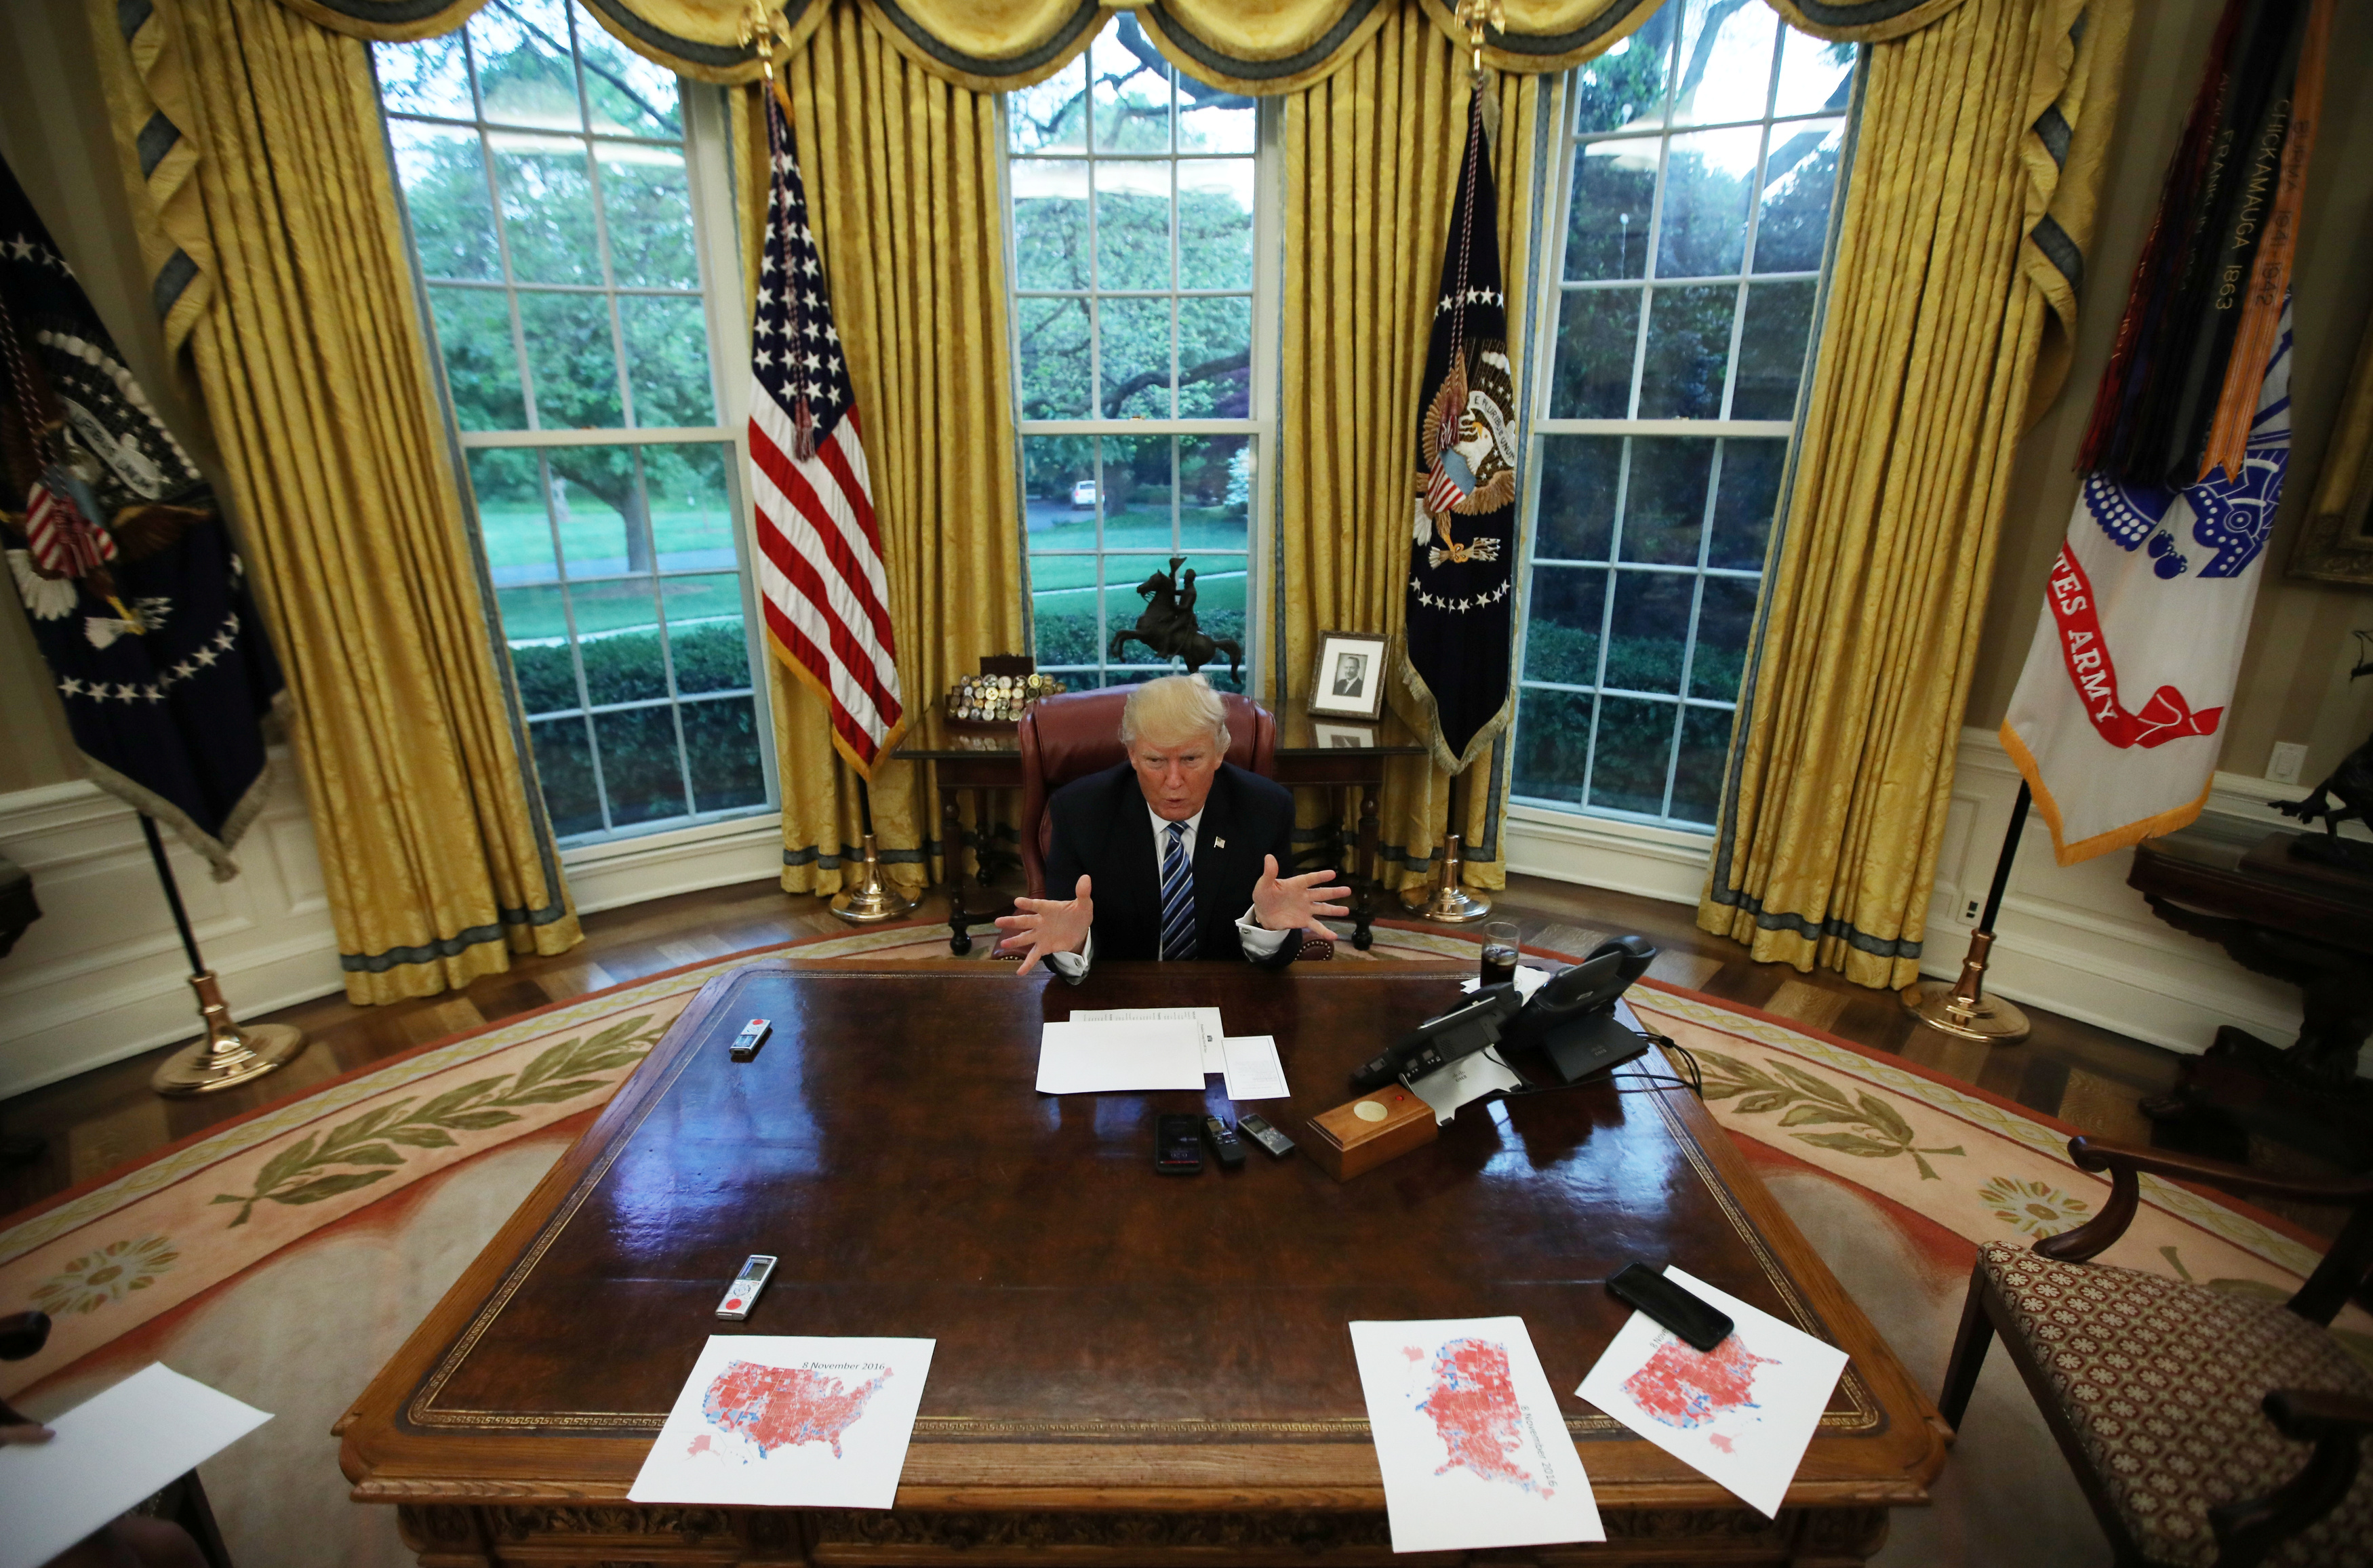 U.S. President Donald Trump speaks during an interview with Reuters in the Oval Office of the White House in Washington, U.S., April 27, 2017. On his desk are maps of the United States that intentionally misplace Alaska and Hawaii so the states can be viewed in detail.